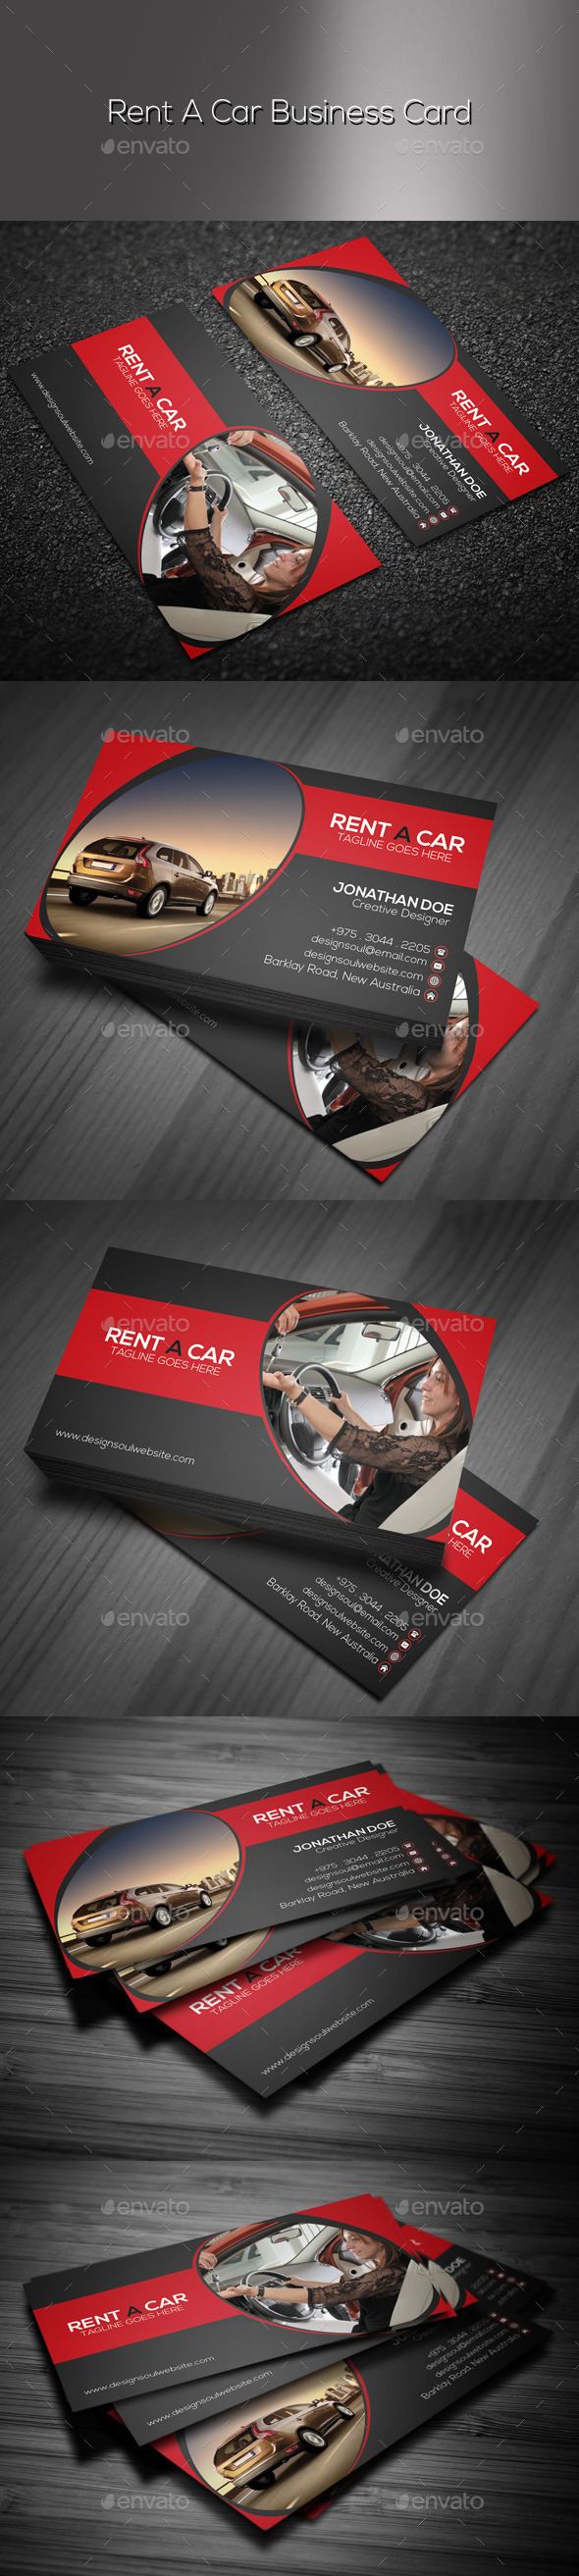 GraphicRiver Rent A Car Business Card 9444262